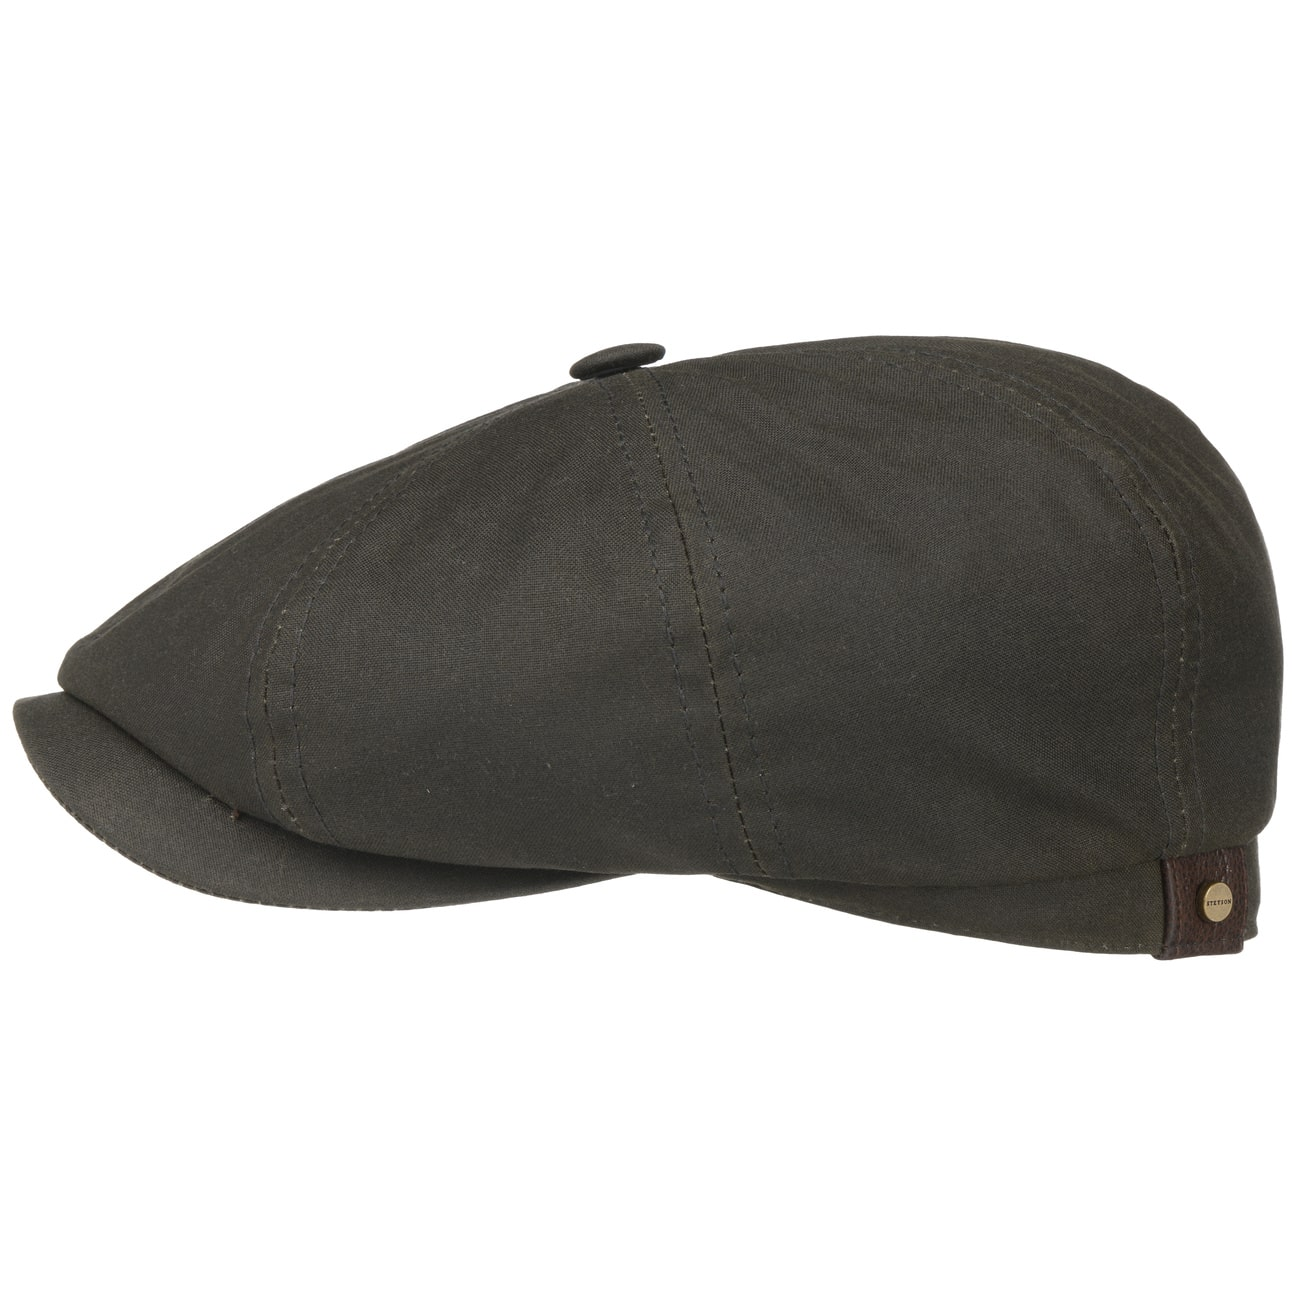 Hatteras Waxed Cotton Cap By Stetson Eur 89 00 Gt Hats